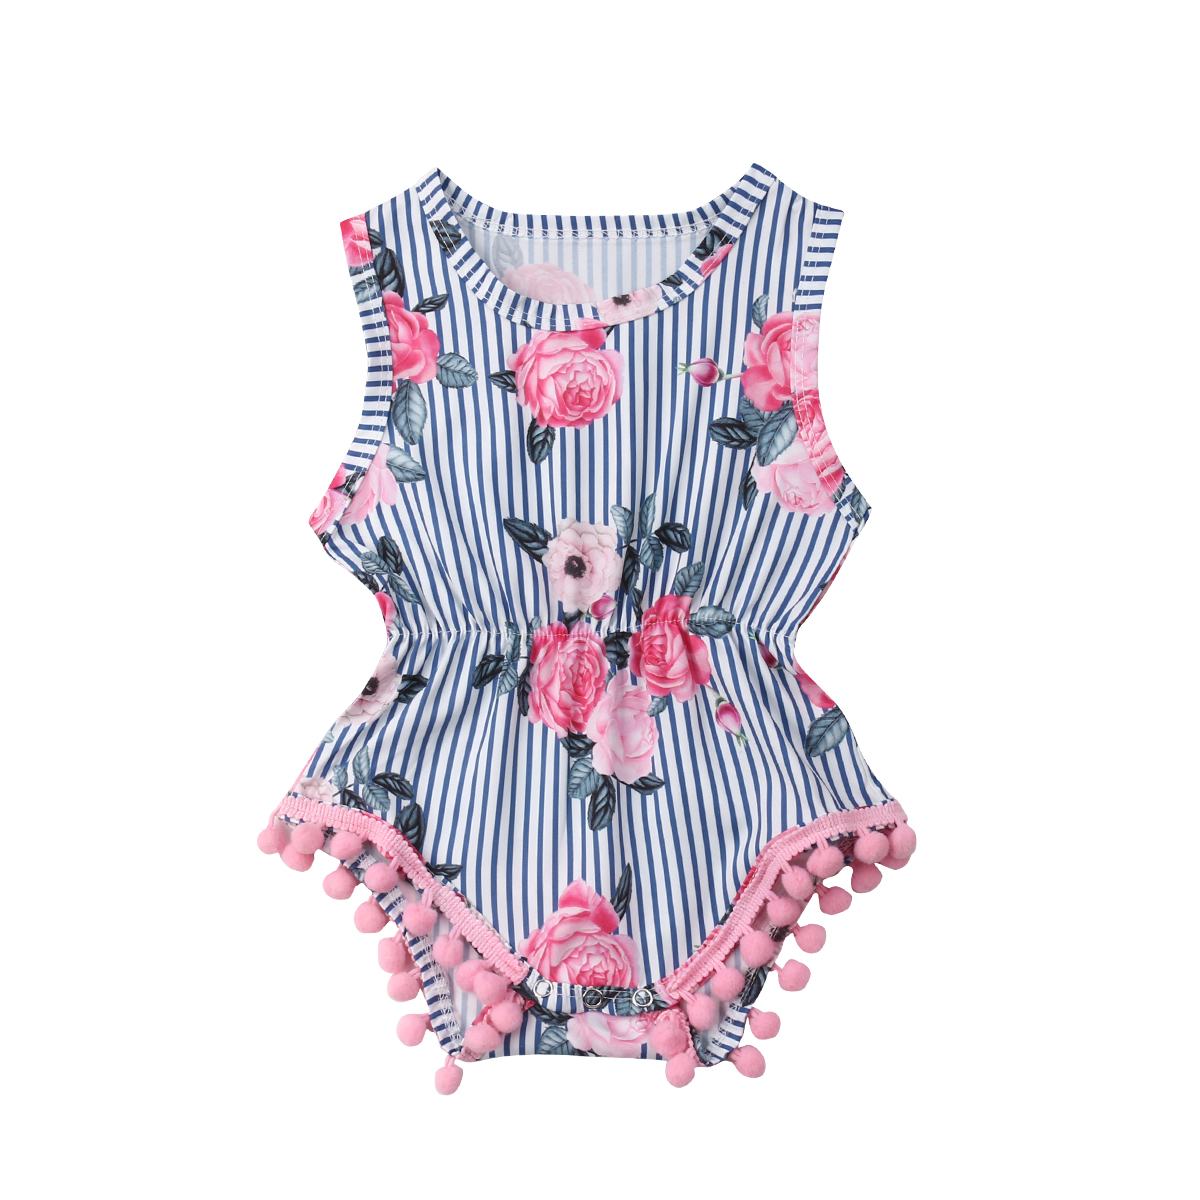 Newborn Toddler Infant Baby Girl Floral Print Bodysuit Jumpsuit Summer Sleeveless Bodysuits Clothes Cotton Outfits